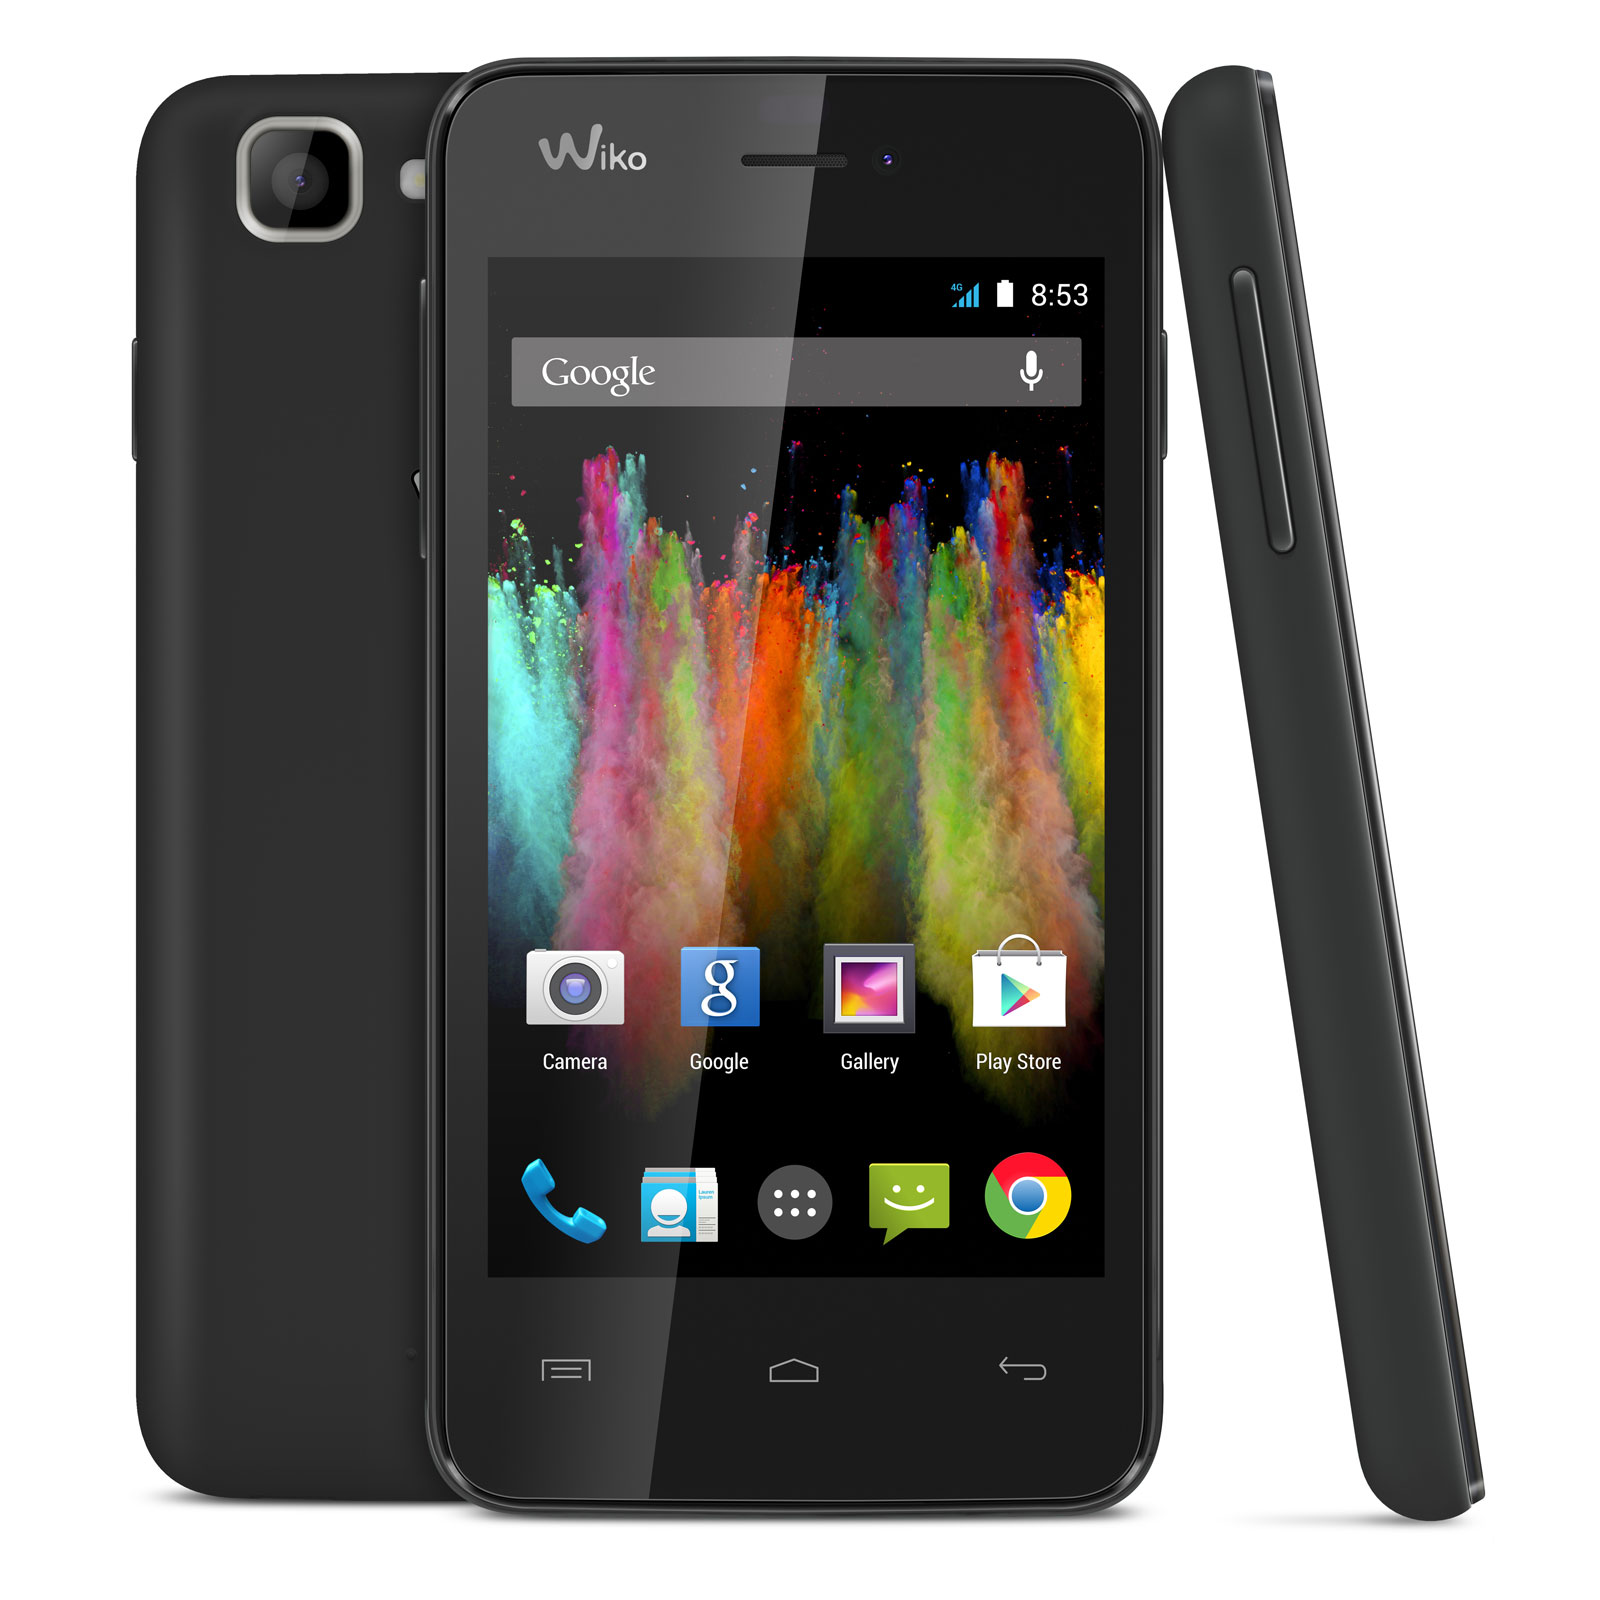 wiko kite noir mobile smartphone wiko sur. Black Bedroom Furniture Sets. Home Design Ideas